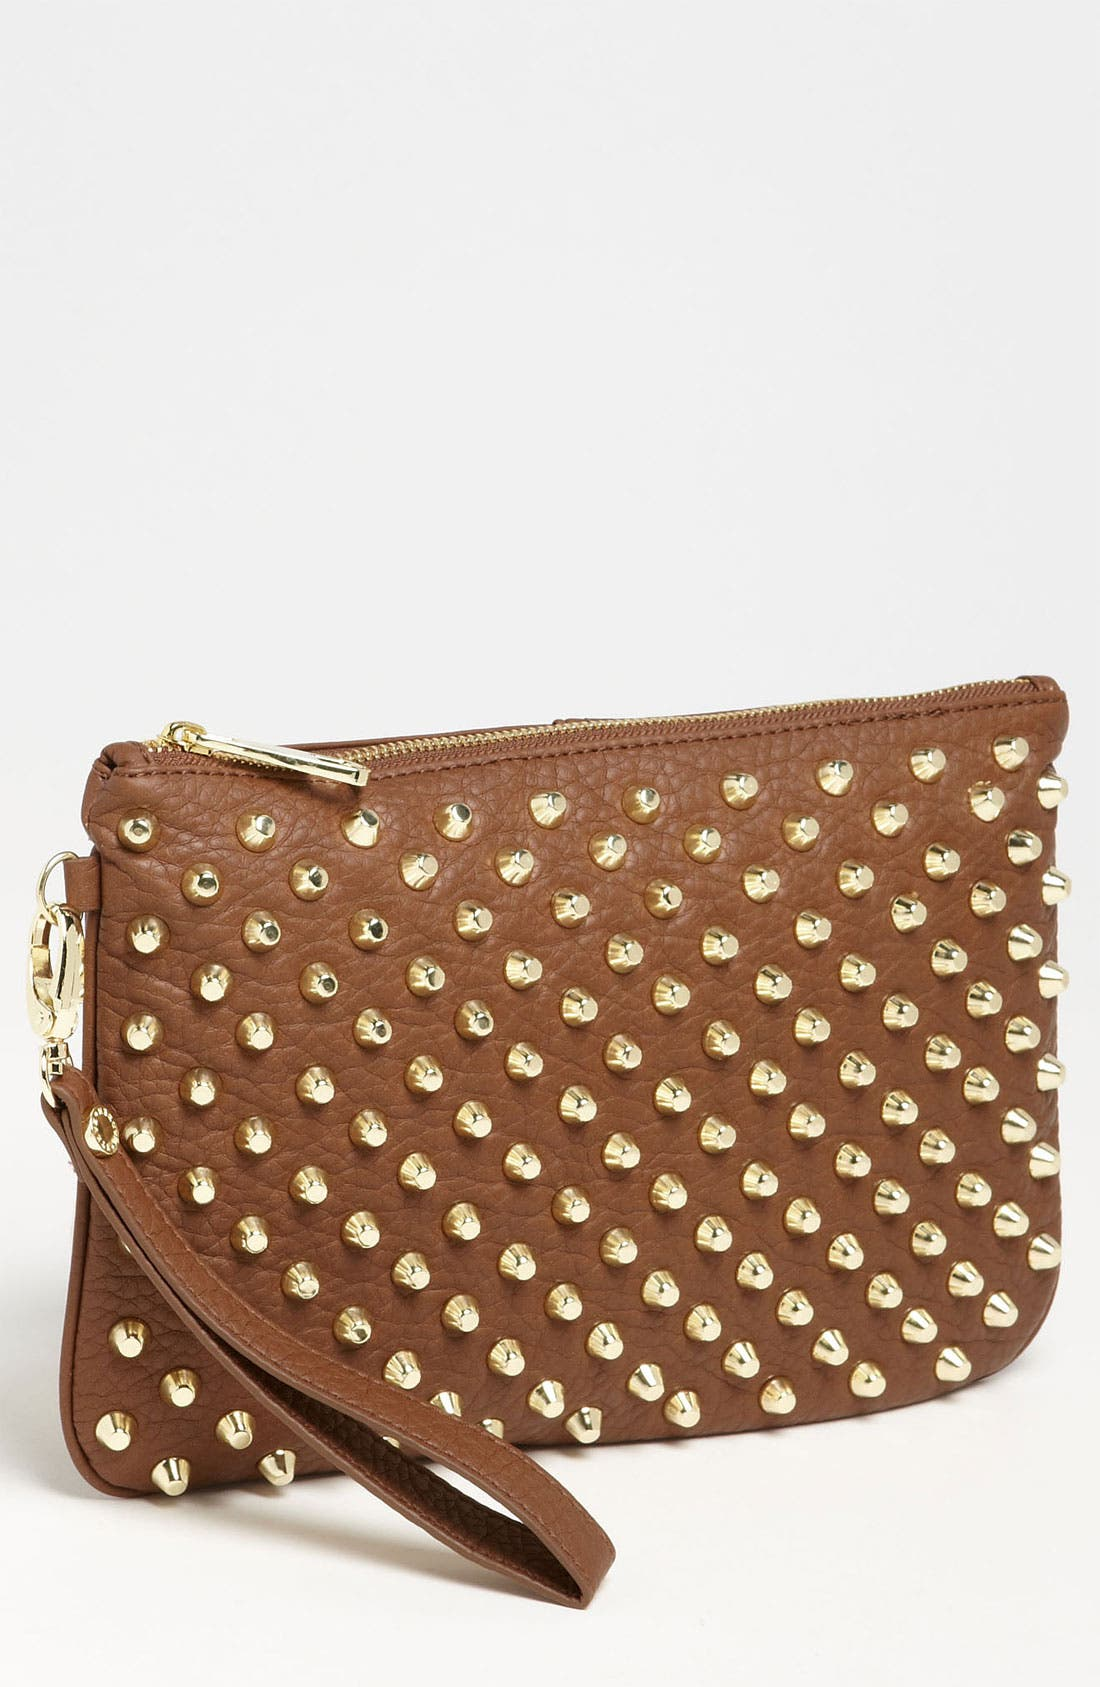 Alternate Image 1 Selected - Steve Madden 'Stud Love - Small' Clutch